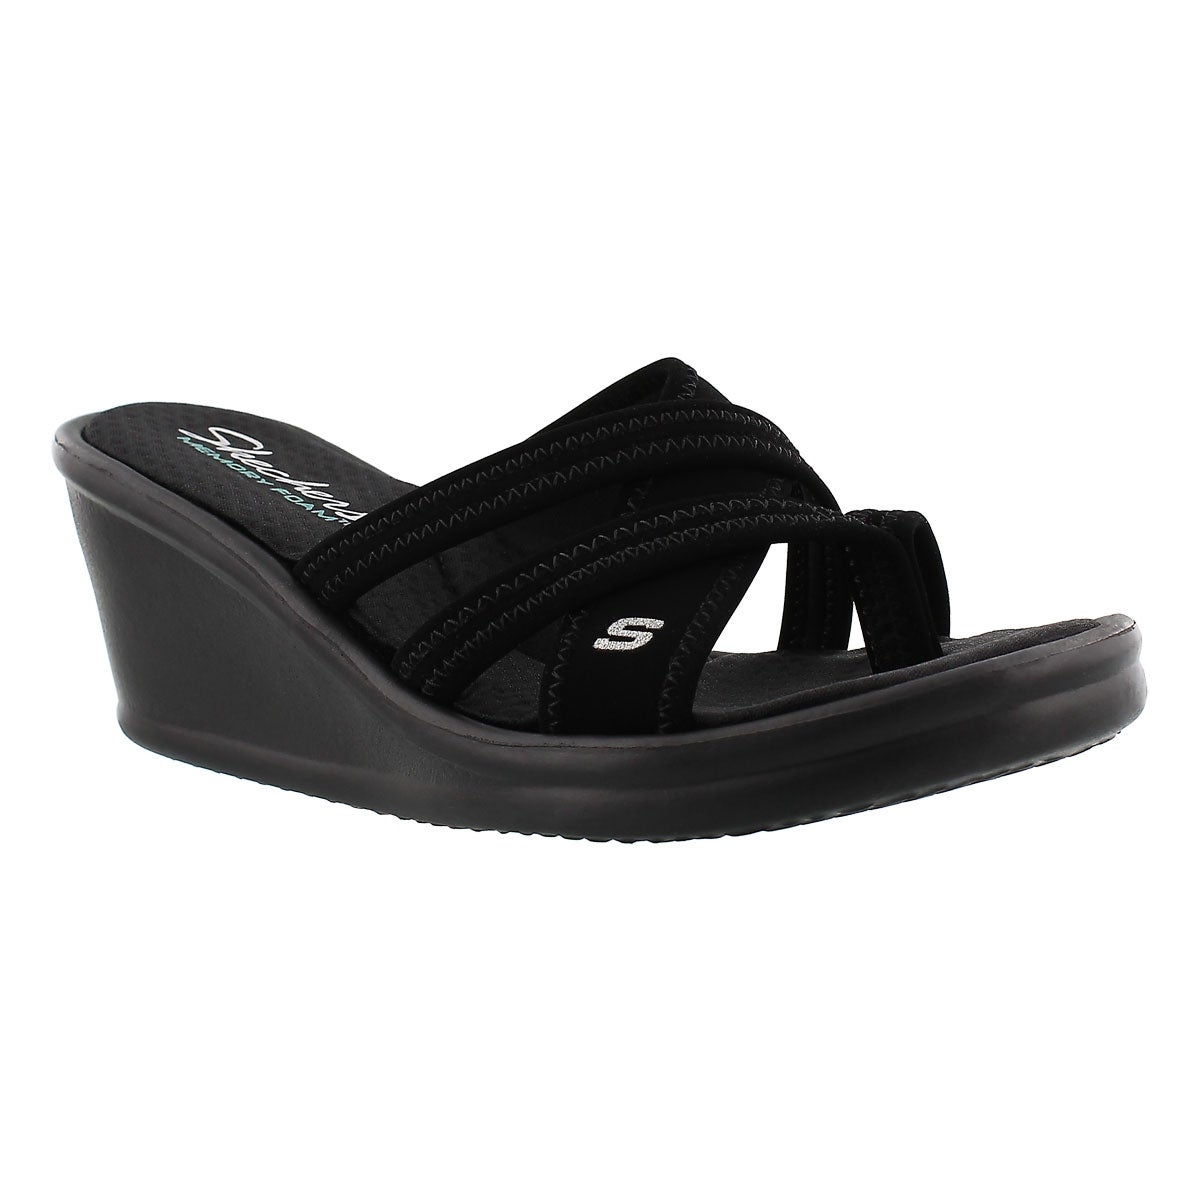 Women's YOUNG AT HEART black wedge sandals